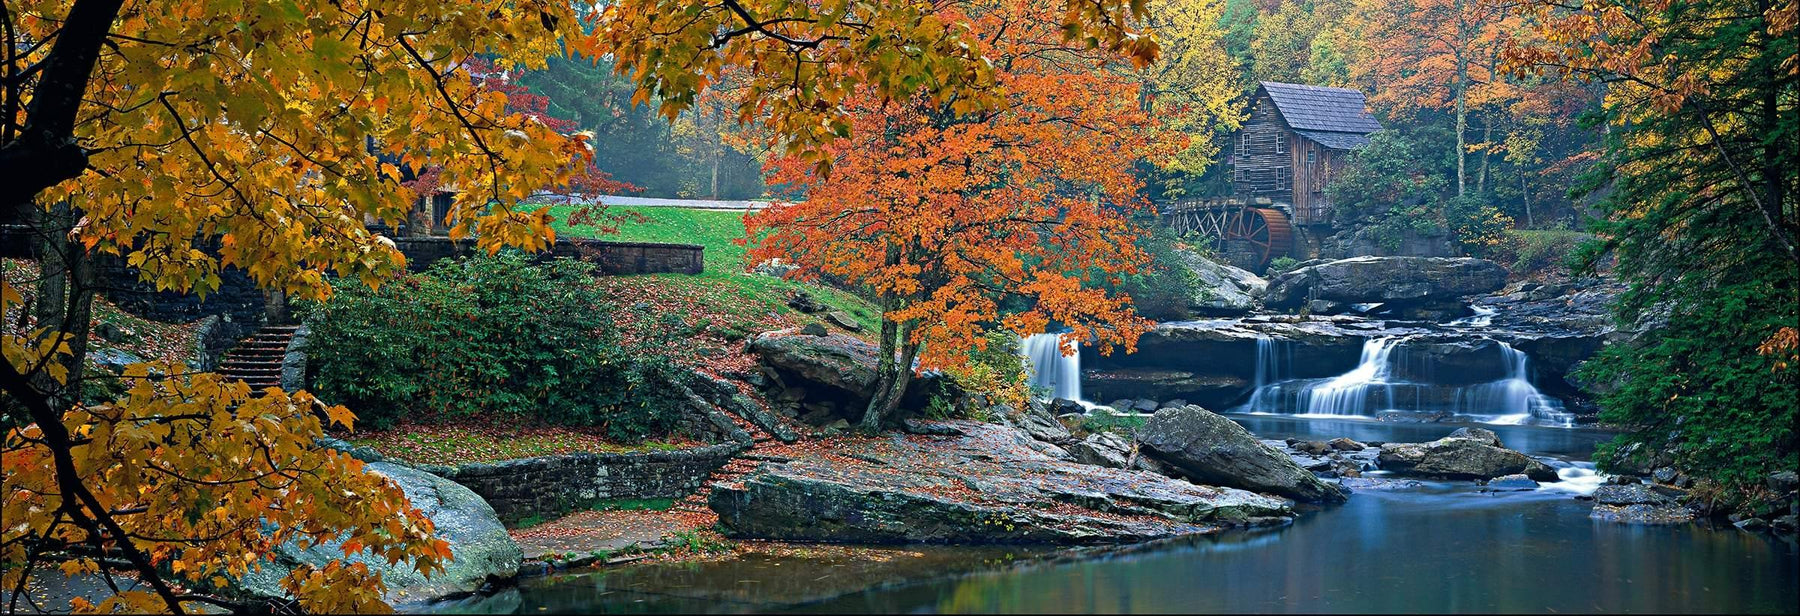 Autumn branches hanging over the rivers edge in front of  Glade Creek Grist Mill in the Appalachian Mountains